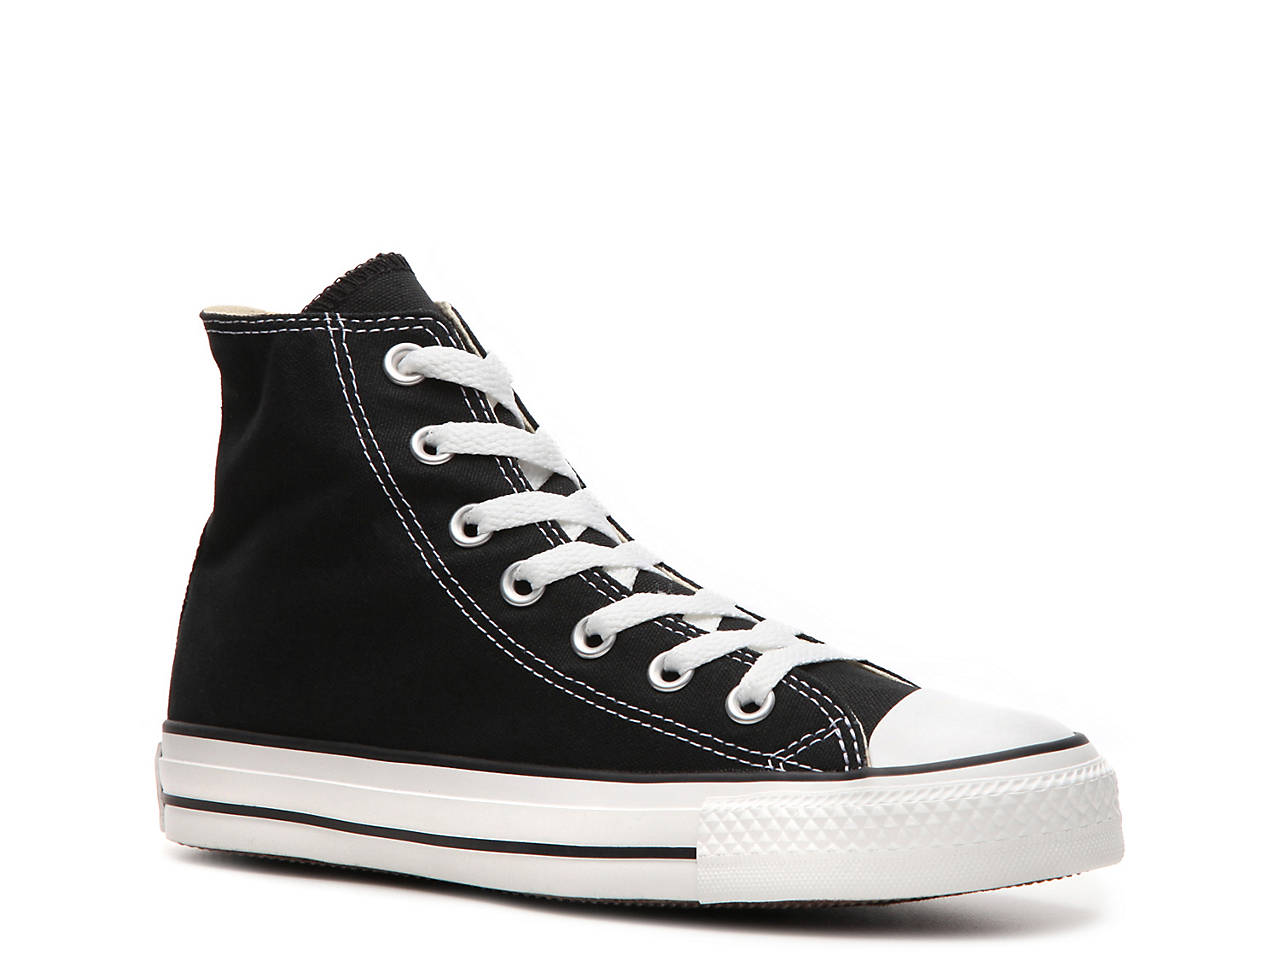 cf6b6fee9dbb Converse Chuck Taylor All Star High-Top Sneaker - Women s Women s ...